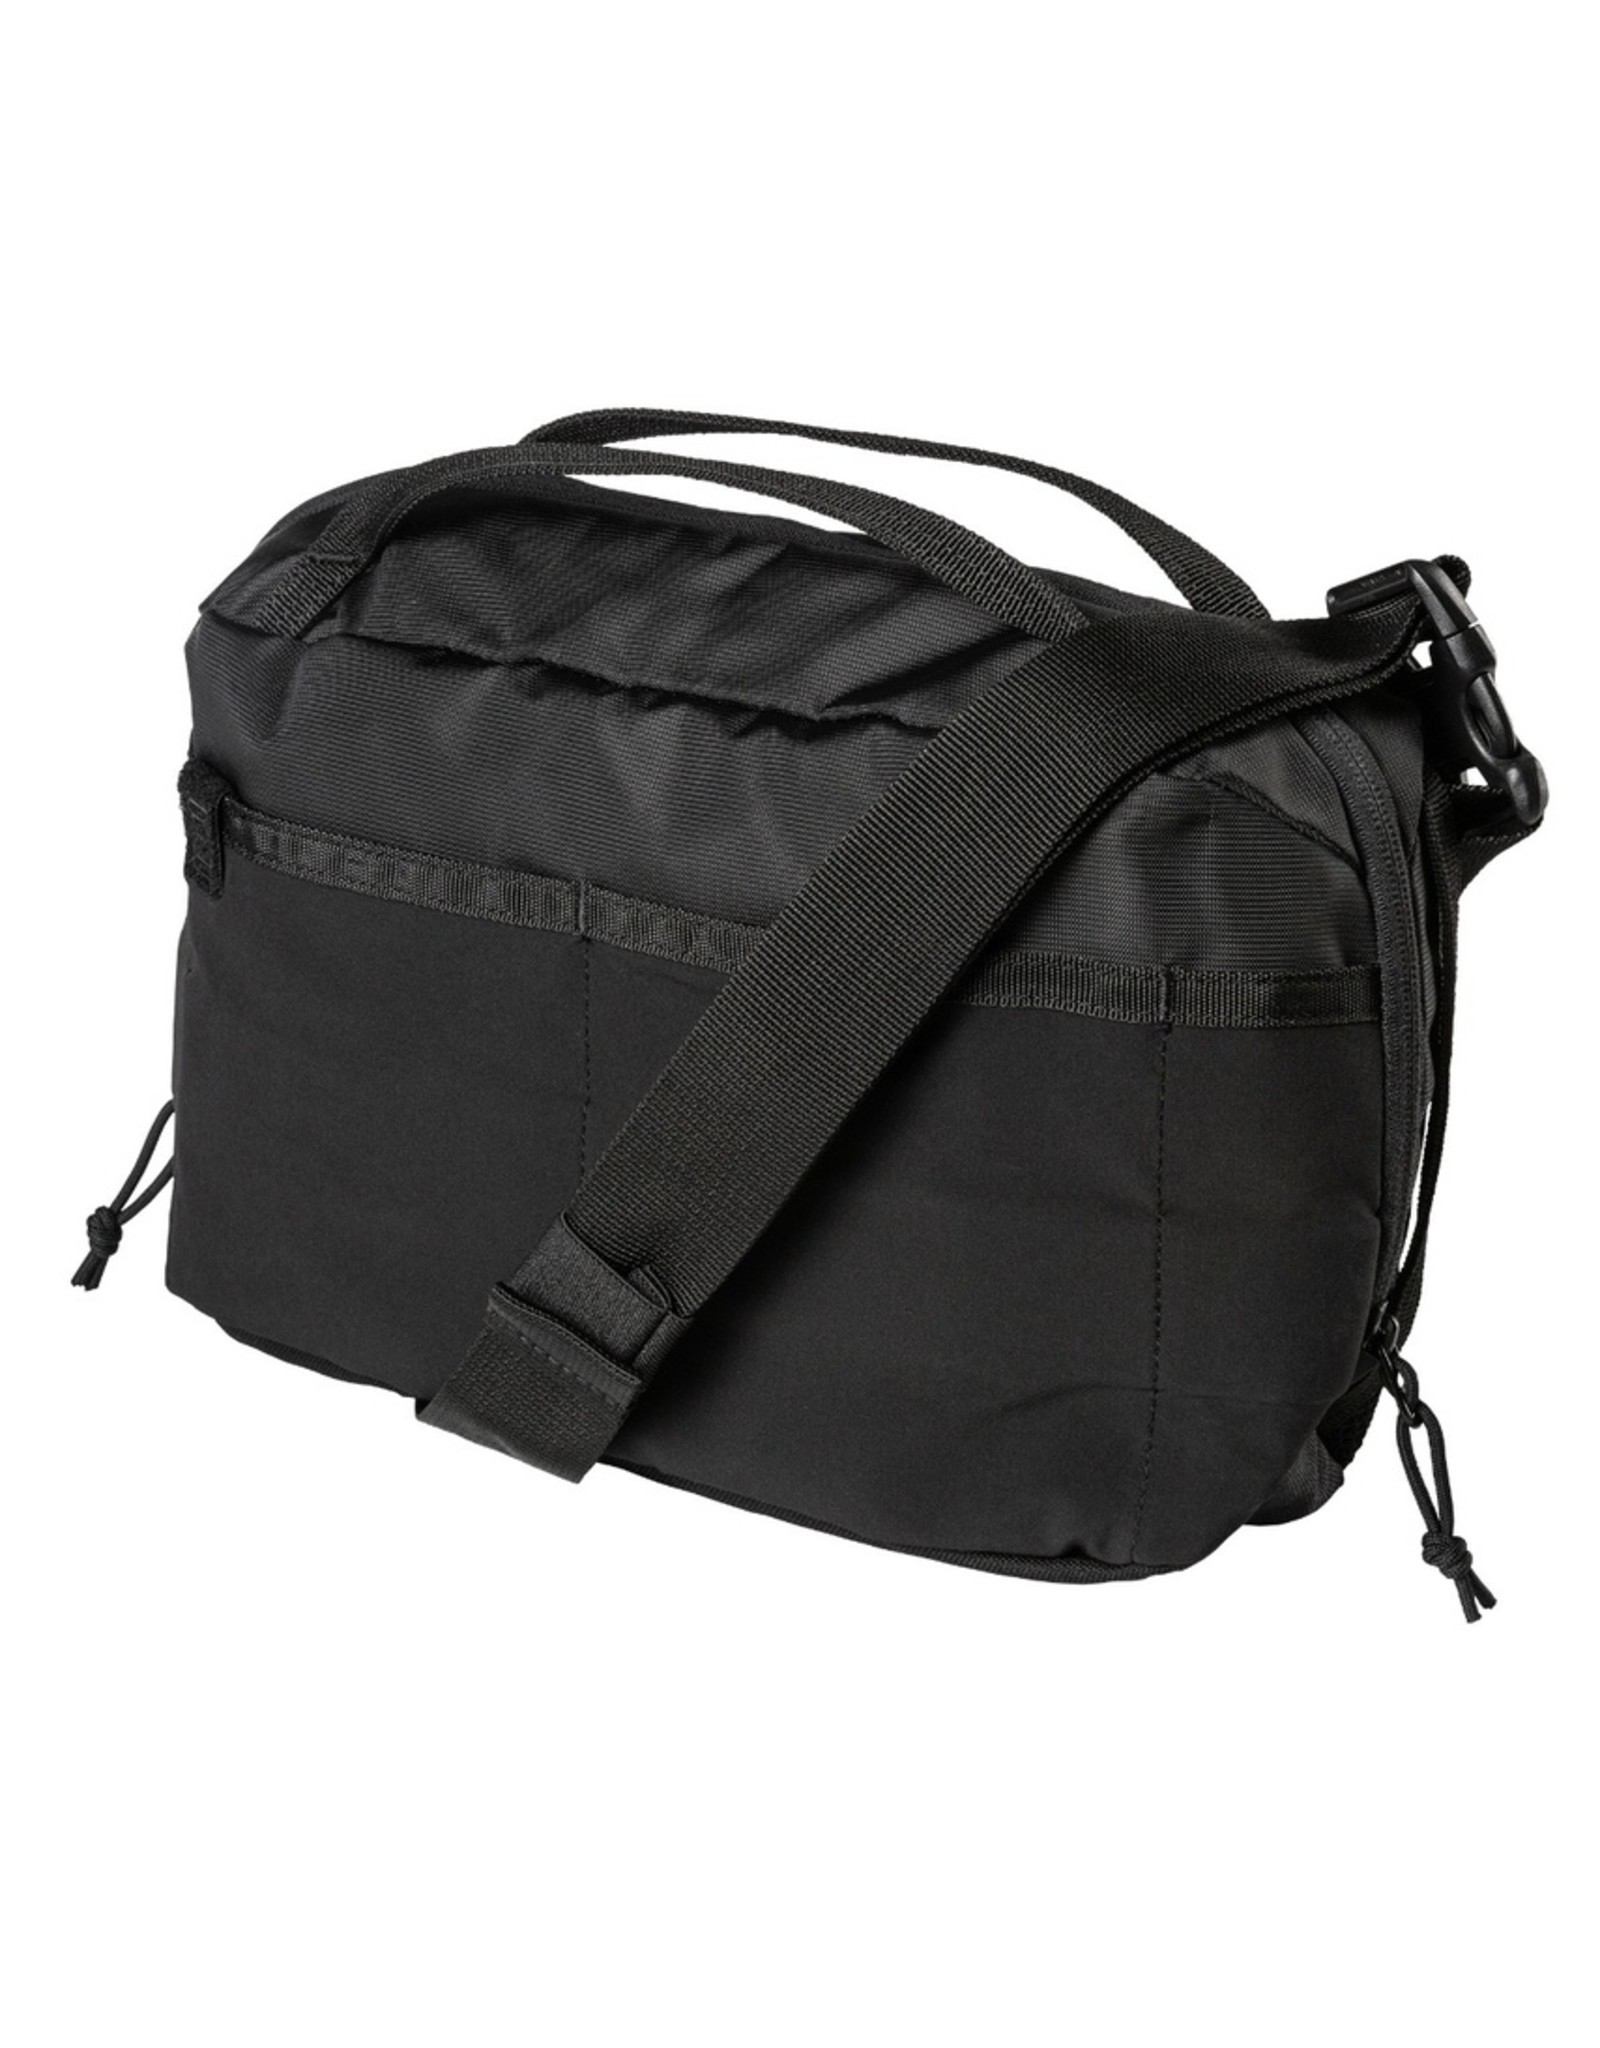 5.11 EMERGENCY READY BAG 6L - ONLINE ONLY